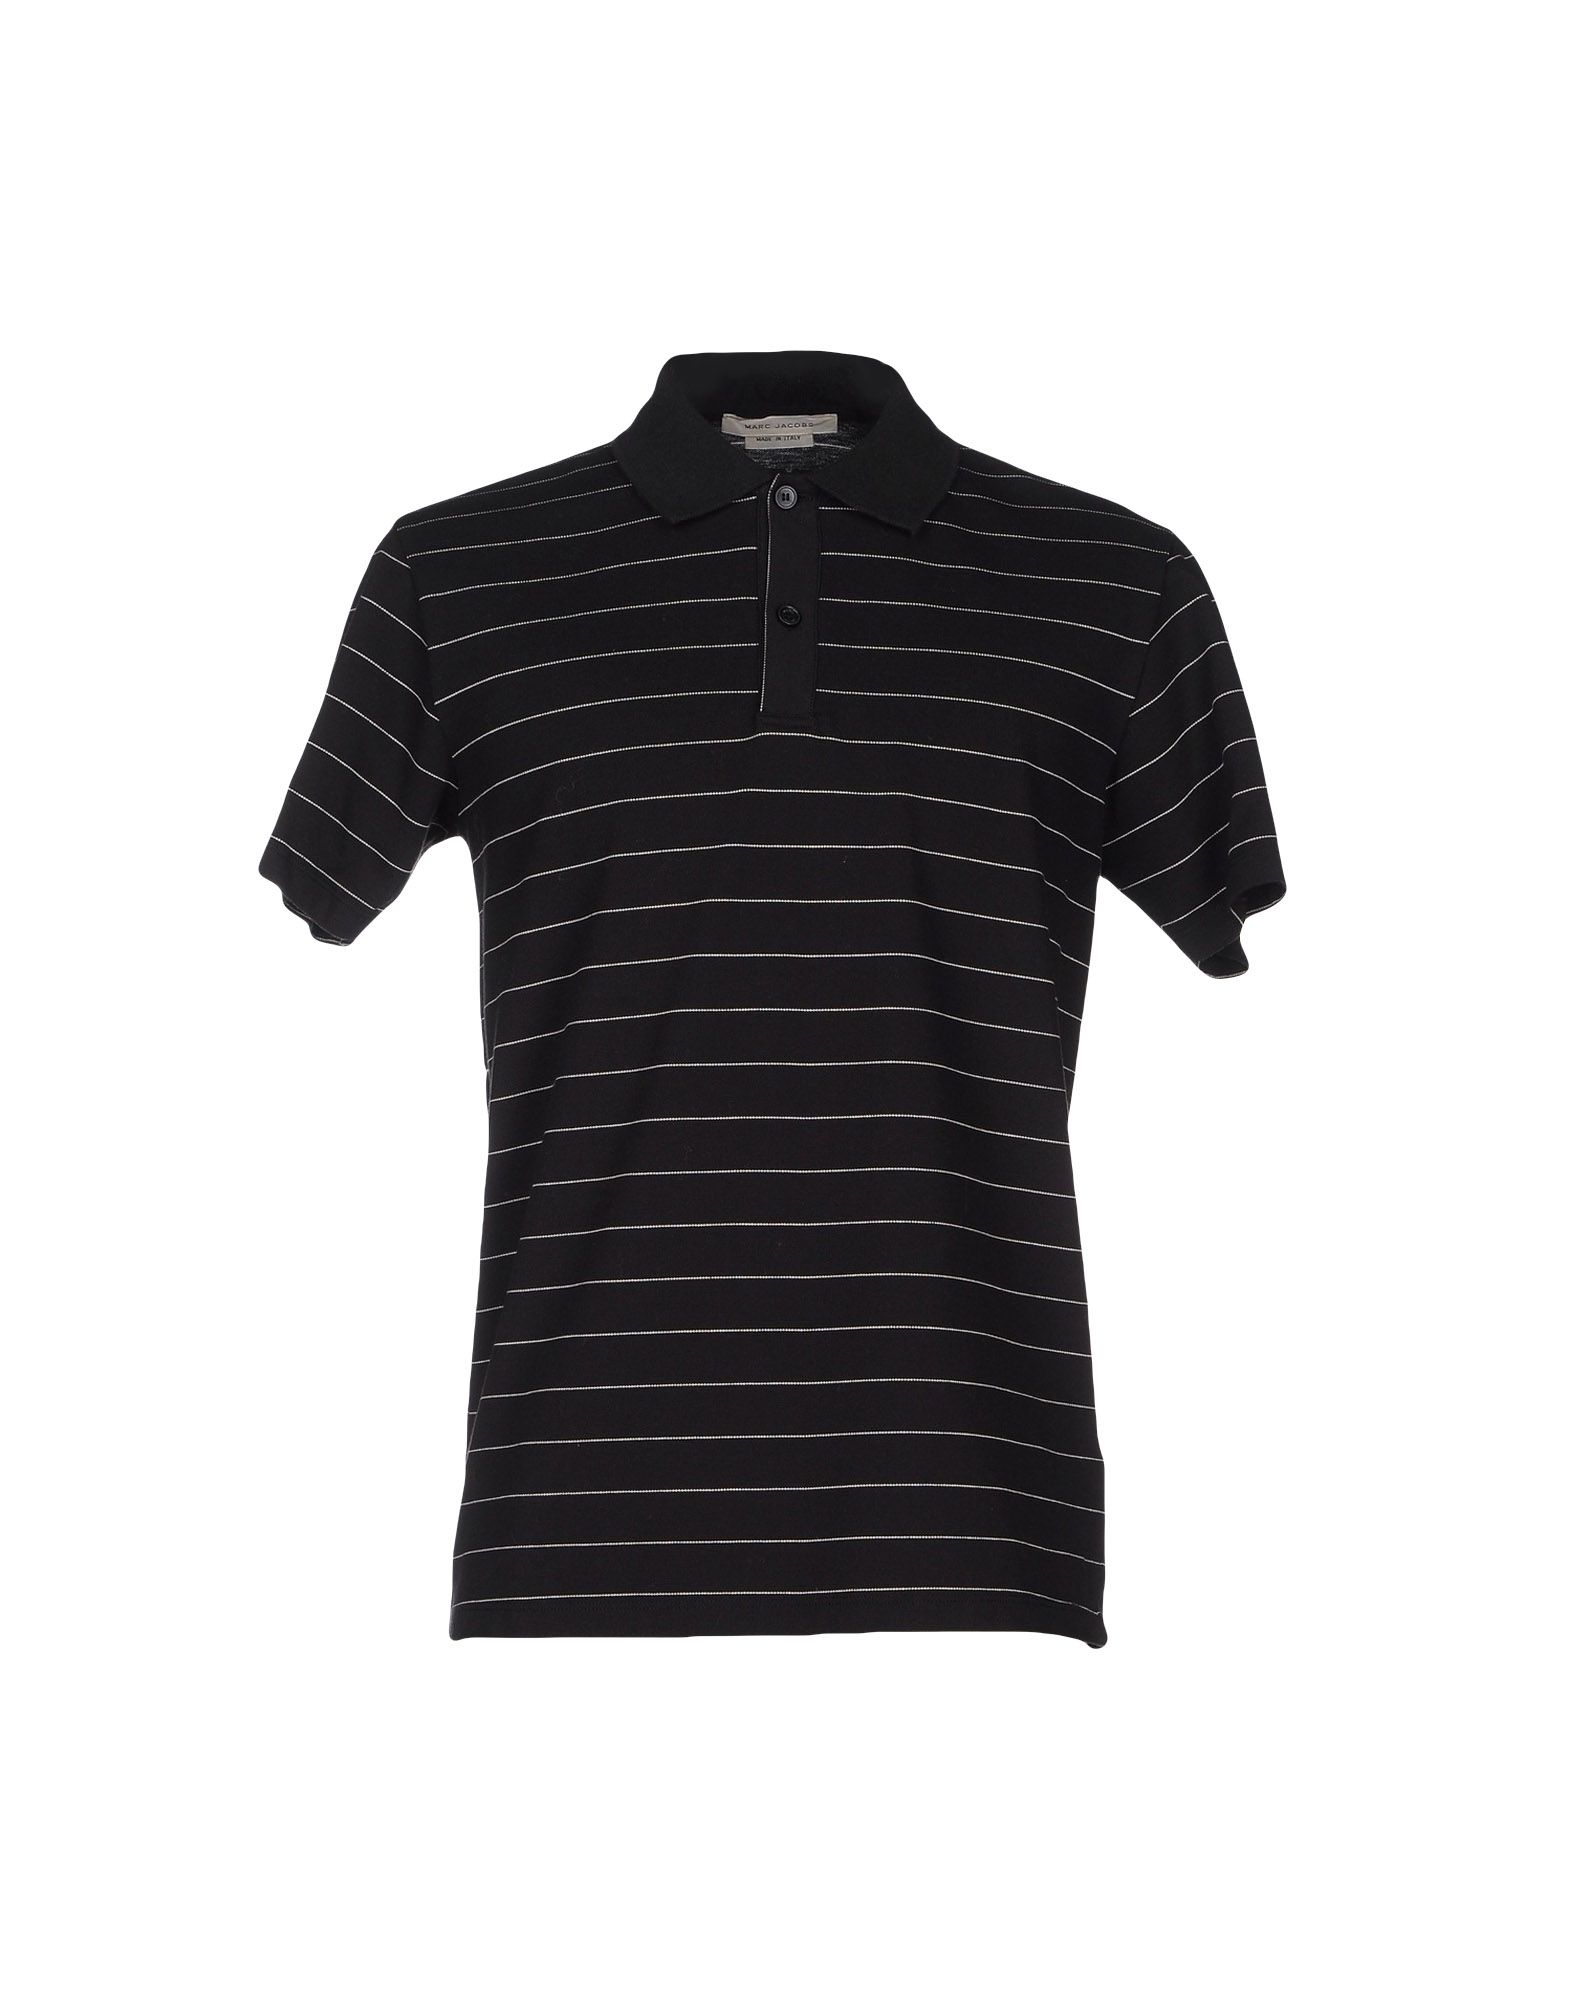 marc jacobs  marc jacobs polo shirts